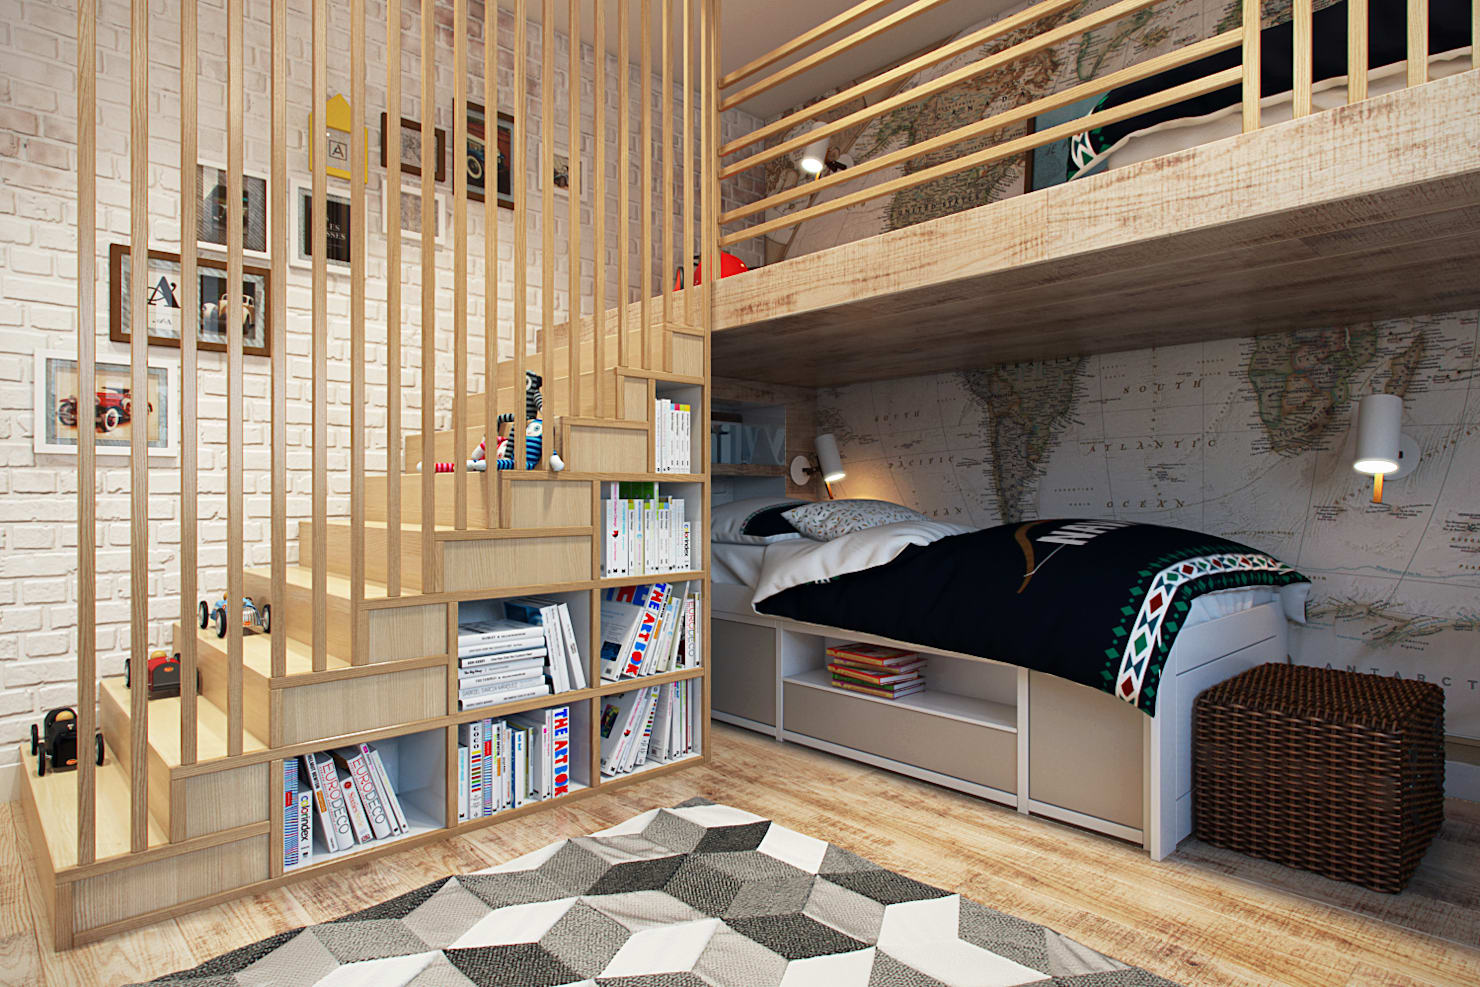 12 amazing shelving ideas for a small home